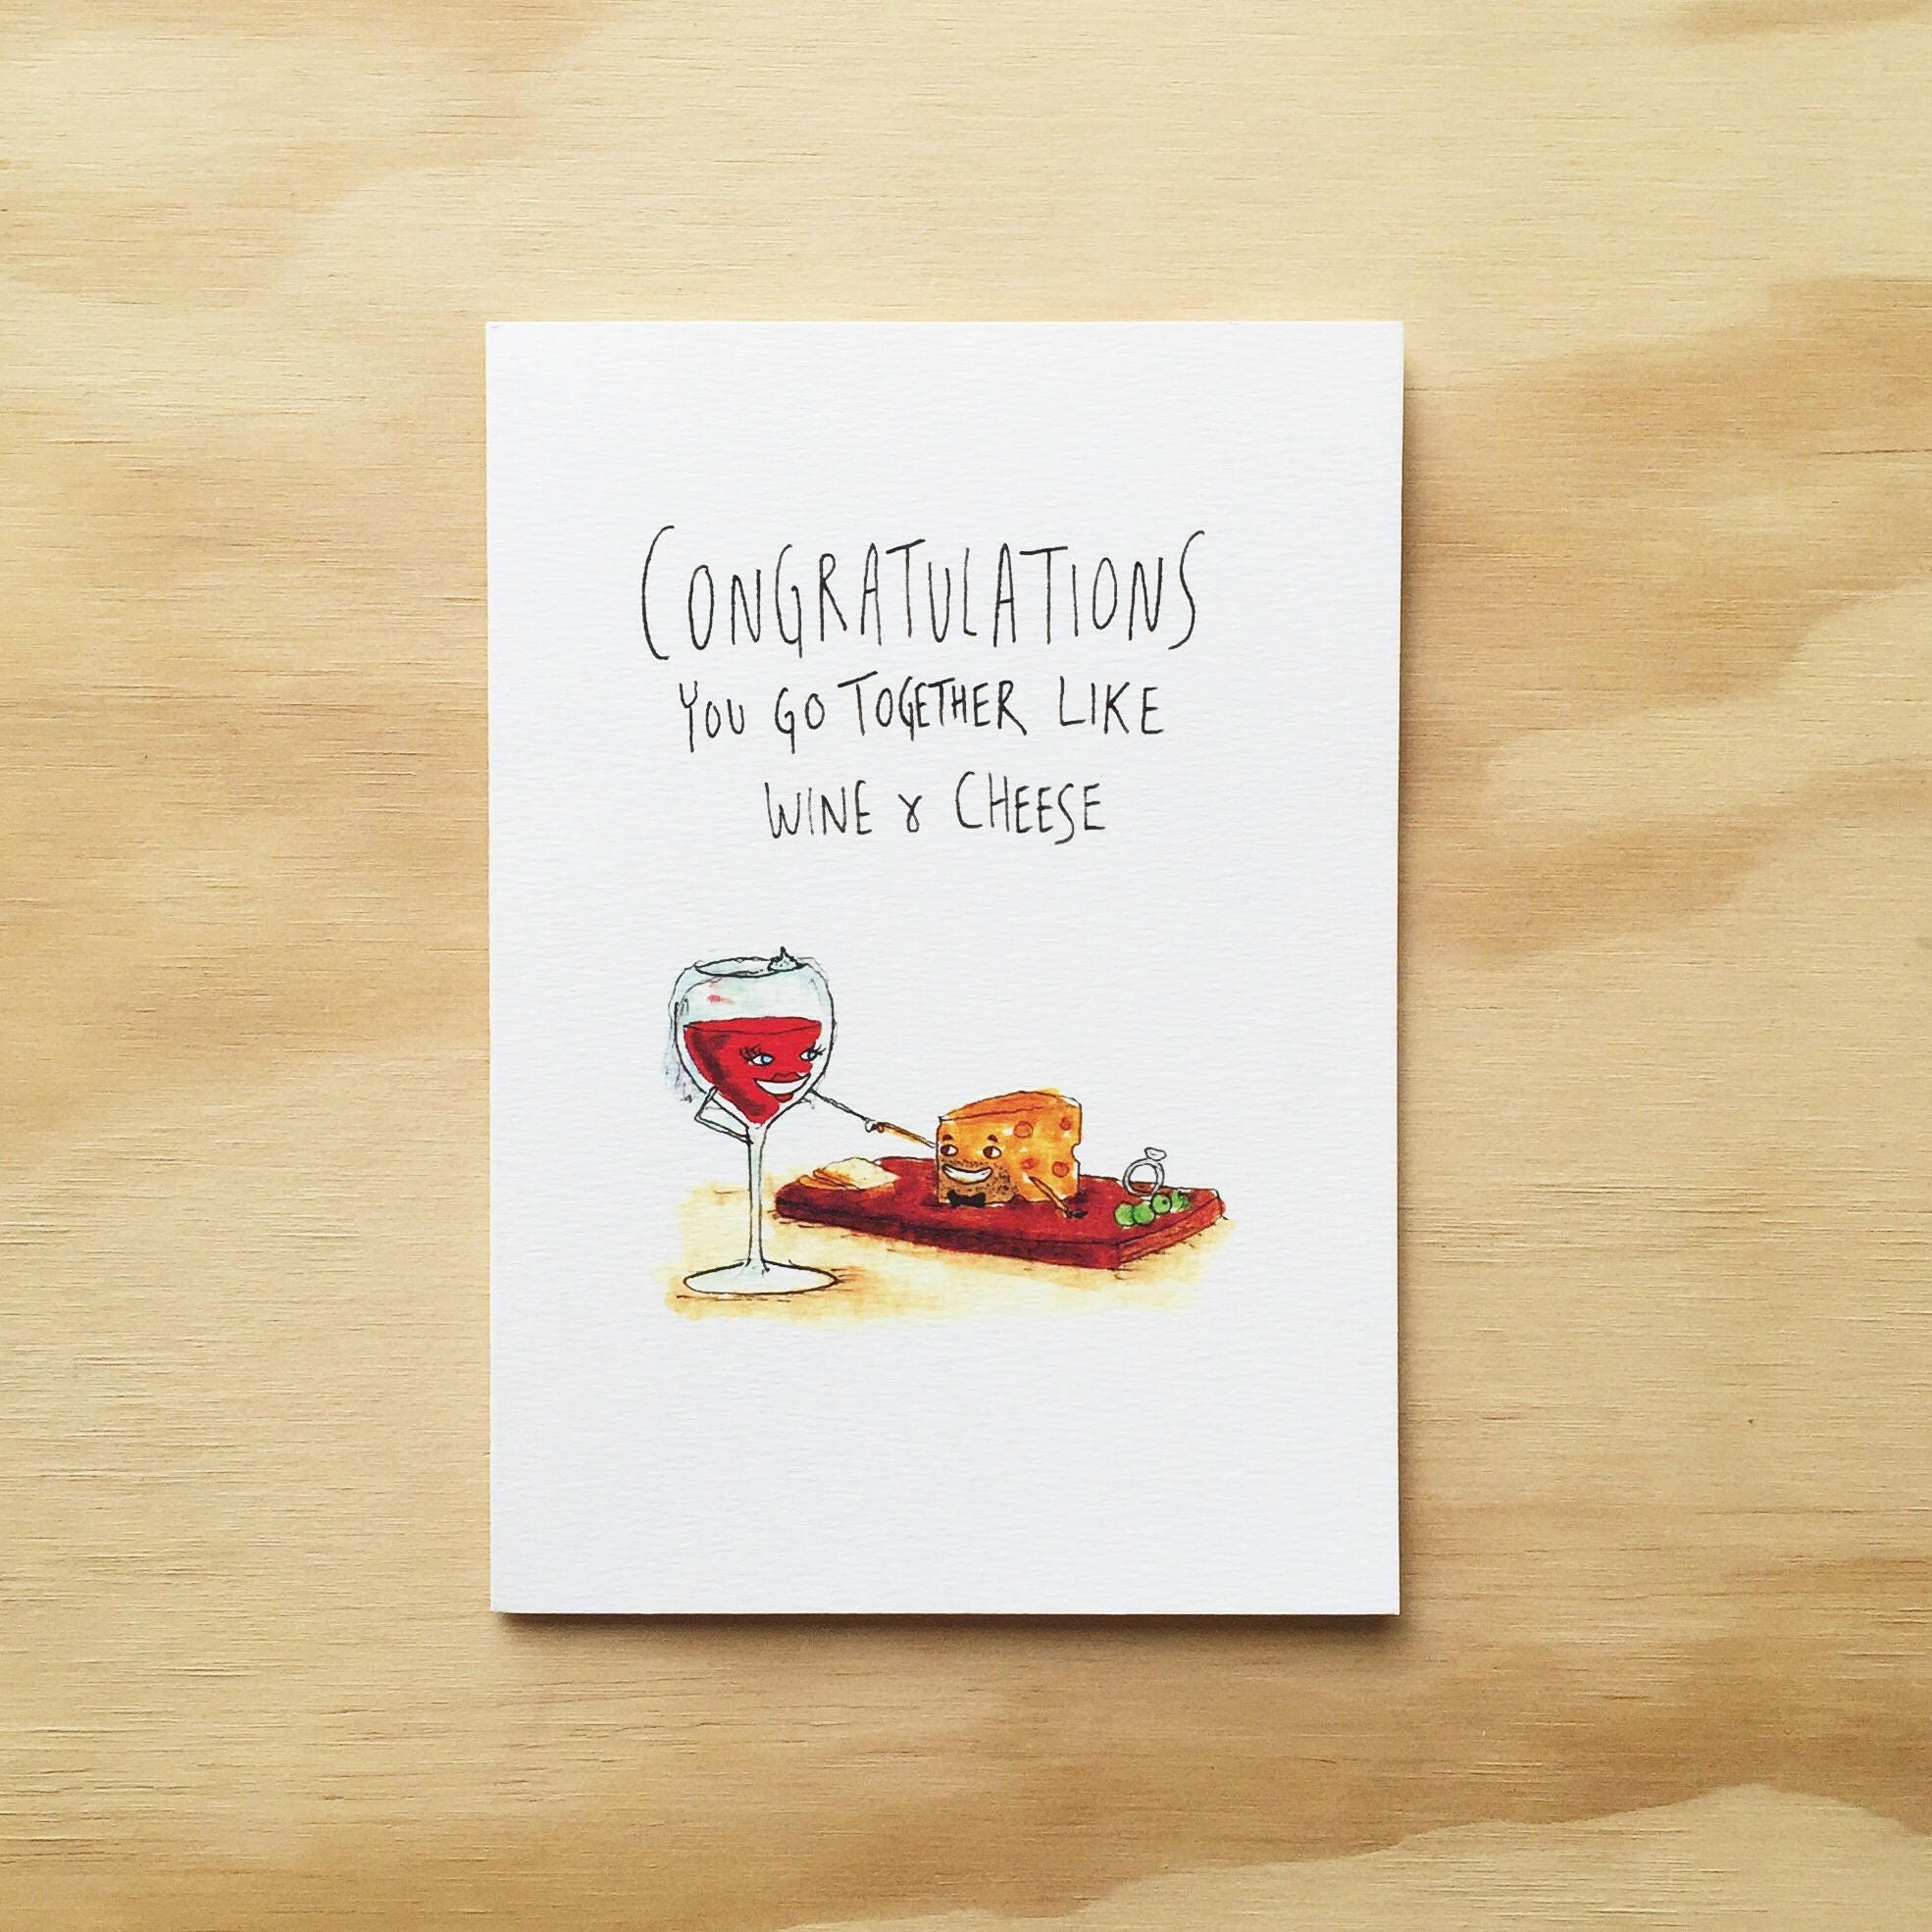 Congratulations you go together like wine and cheese zoom kristyandbryce Choice Image